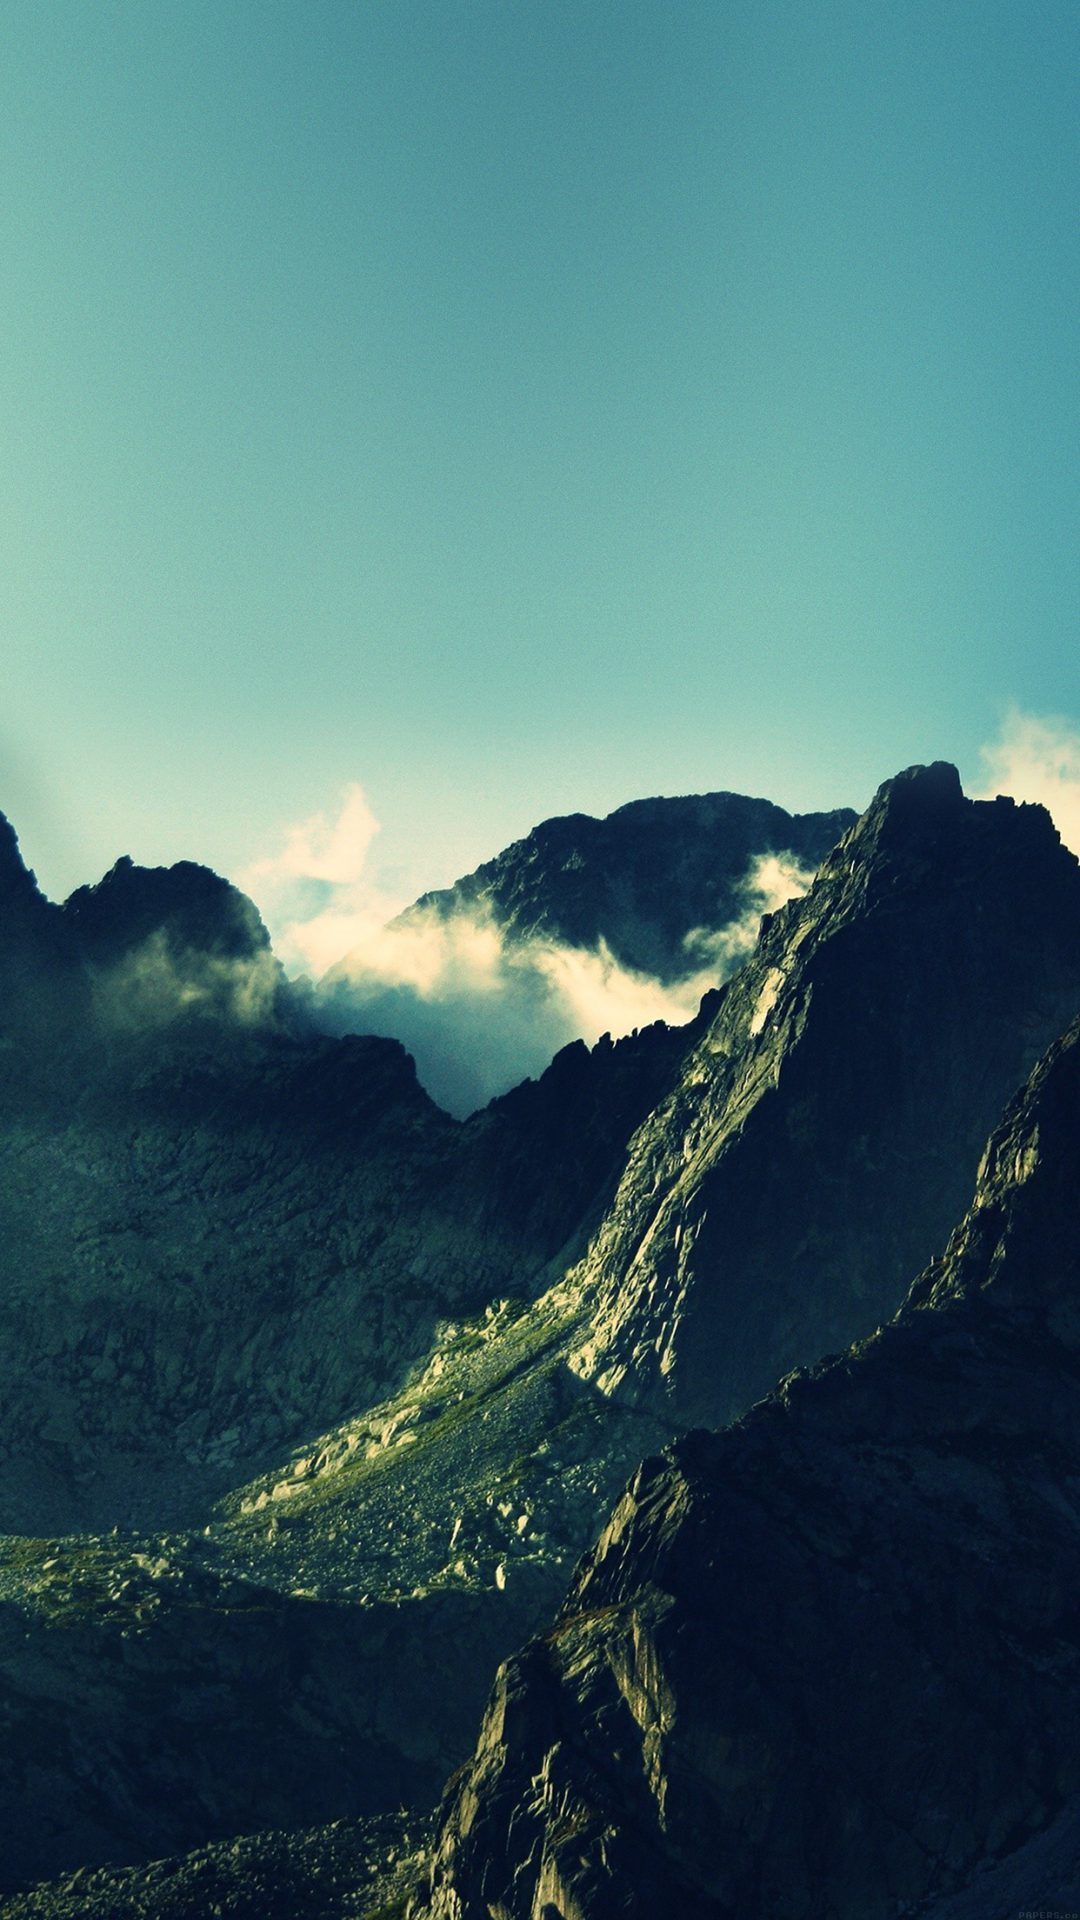 Breath Taking Mountains Sky High Nature